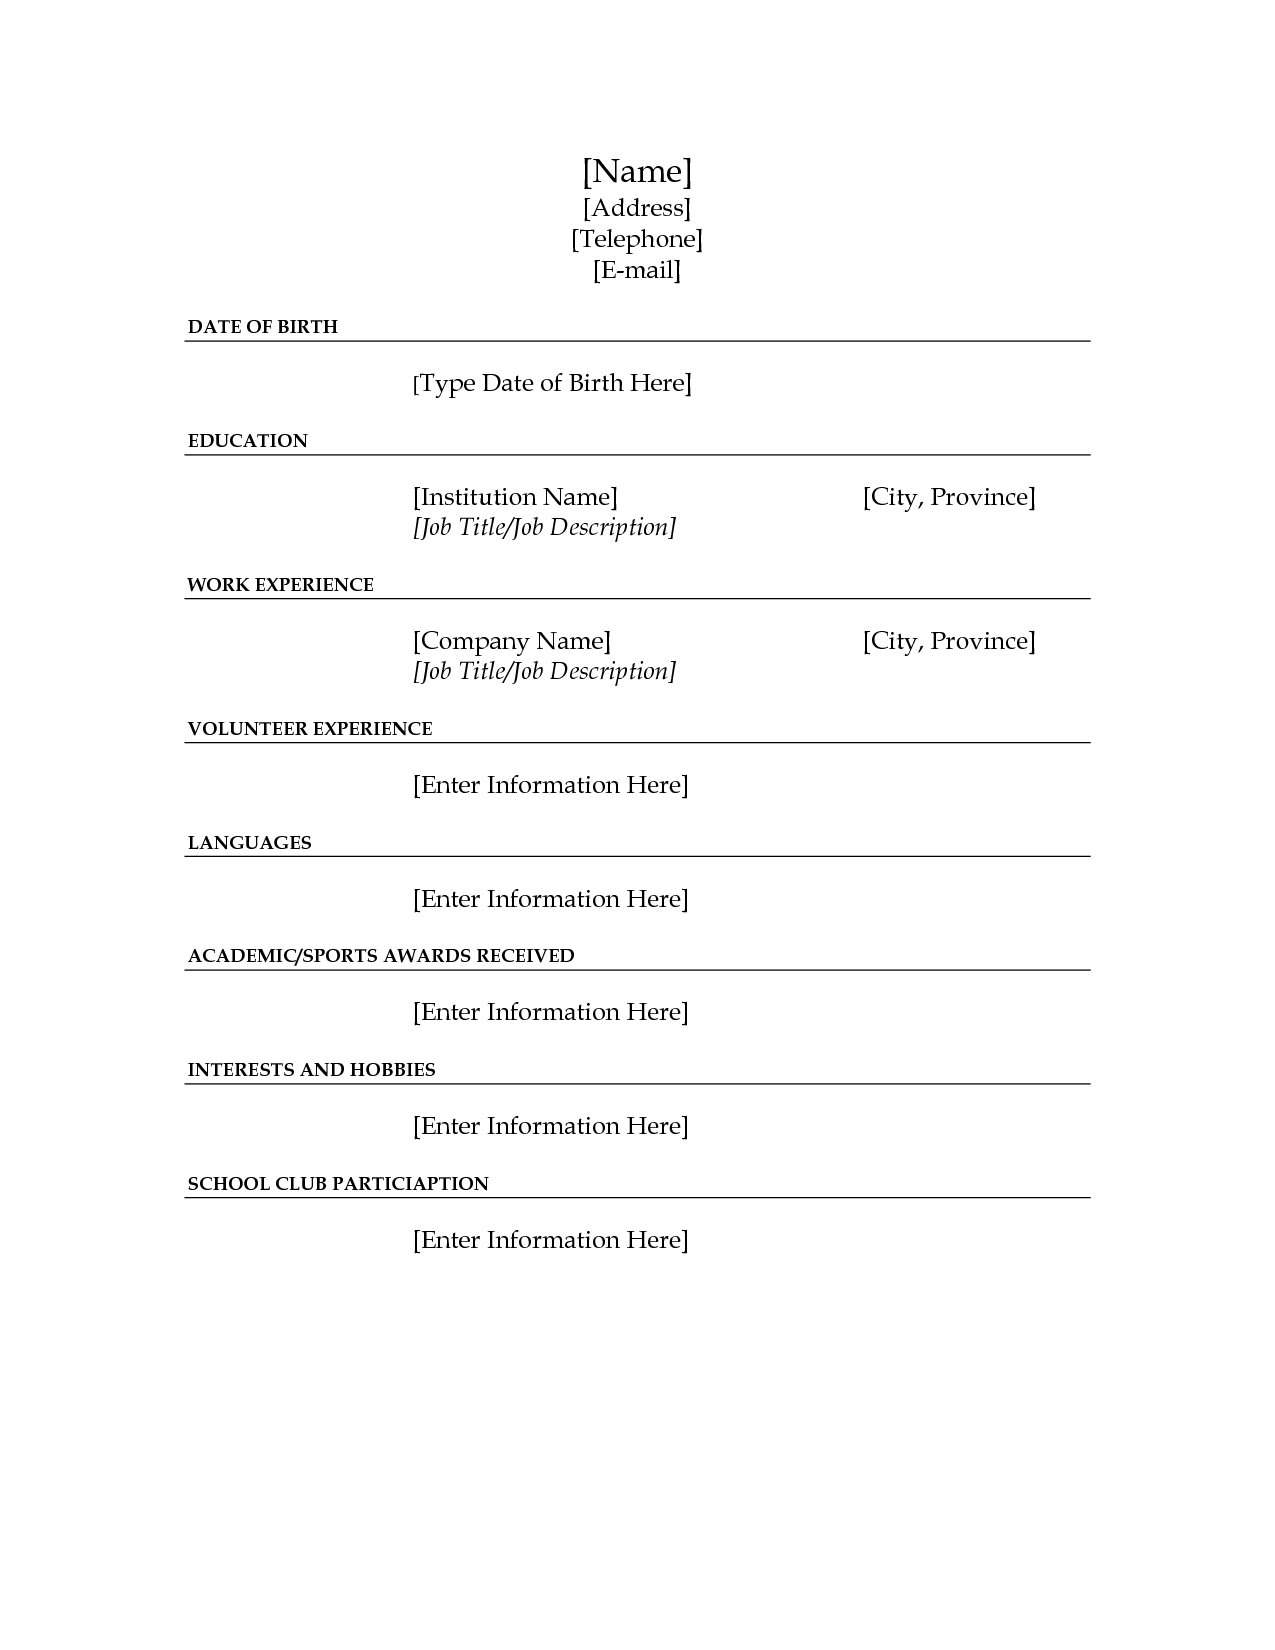 Job Resume Fill Blank | Scope Of Work Template